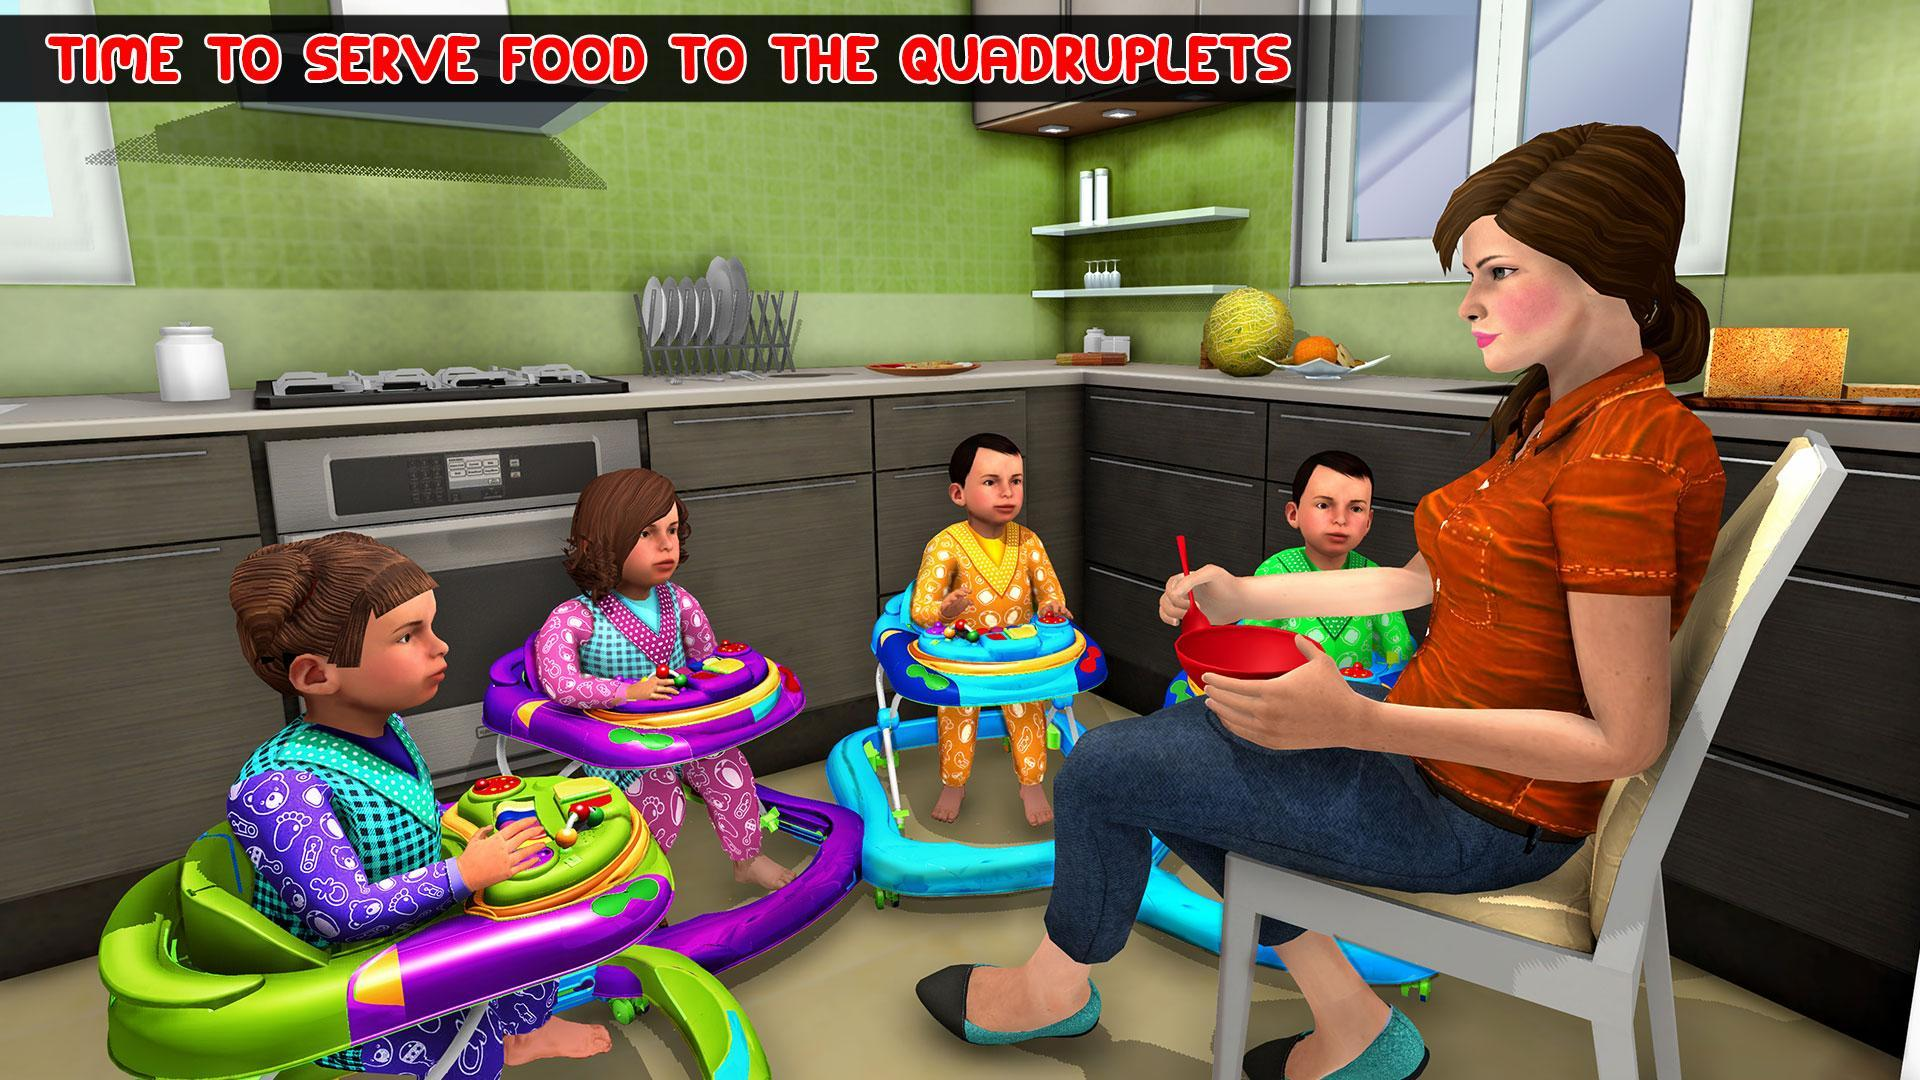 Virtual Mother Baby Quadruplets Family Simulator 1.0.9 Screenshot 8